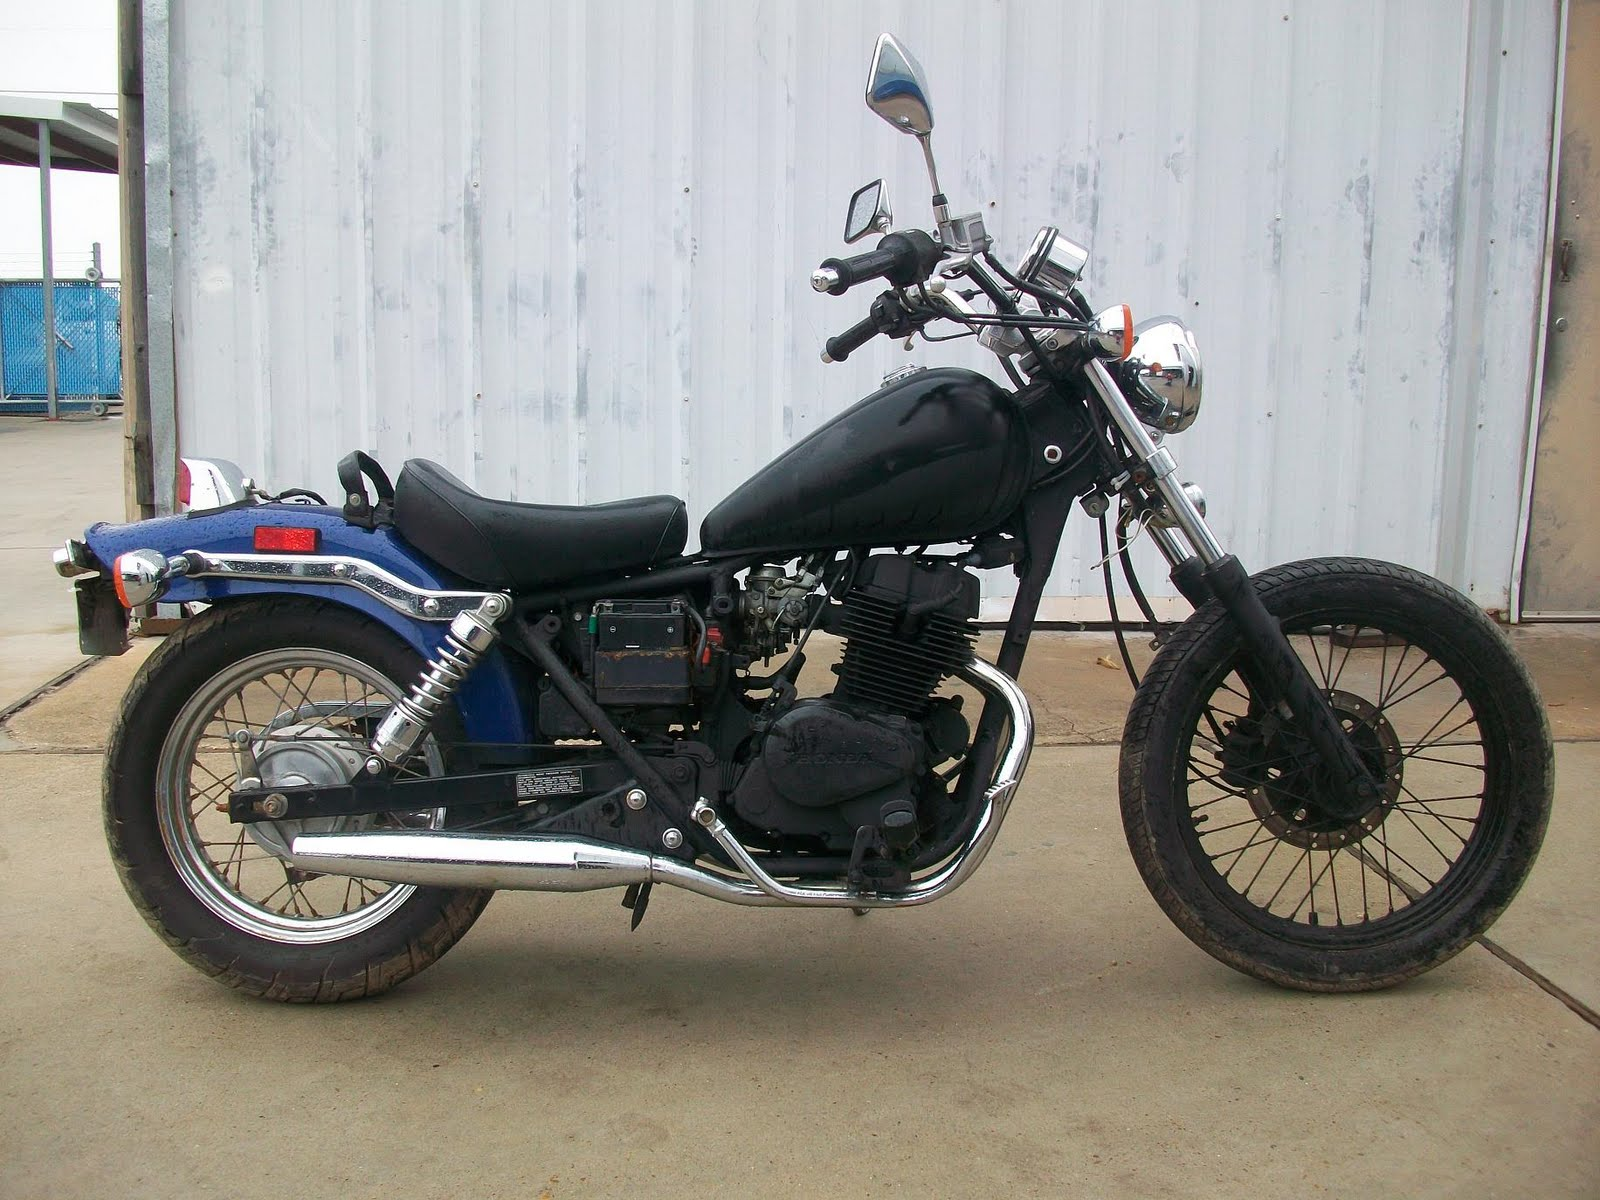 Tail End Customs 2001 Honda Rebel Cmx250 Bobber White Pretty Funky Huh Well The Colors It Had On When I Picked Up Got Me Thinkin Man This Thing Looks Beatup All Black And Blue